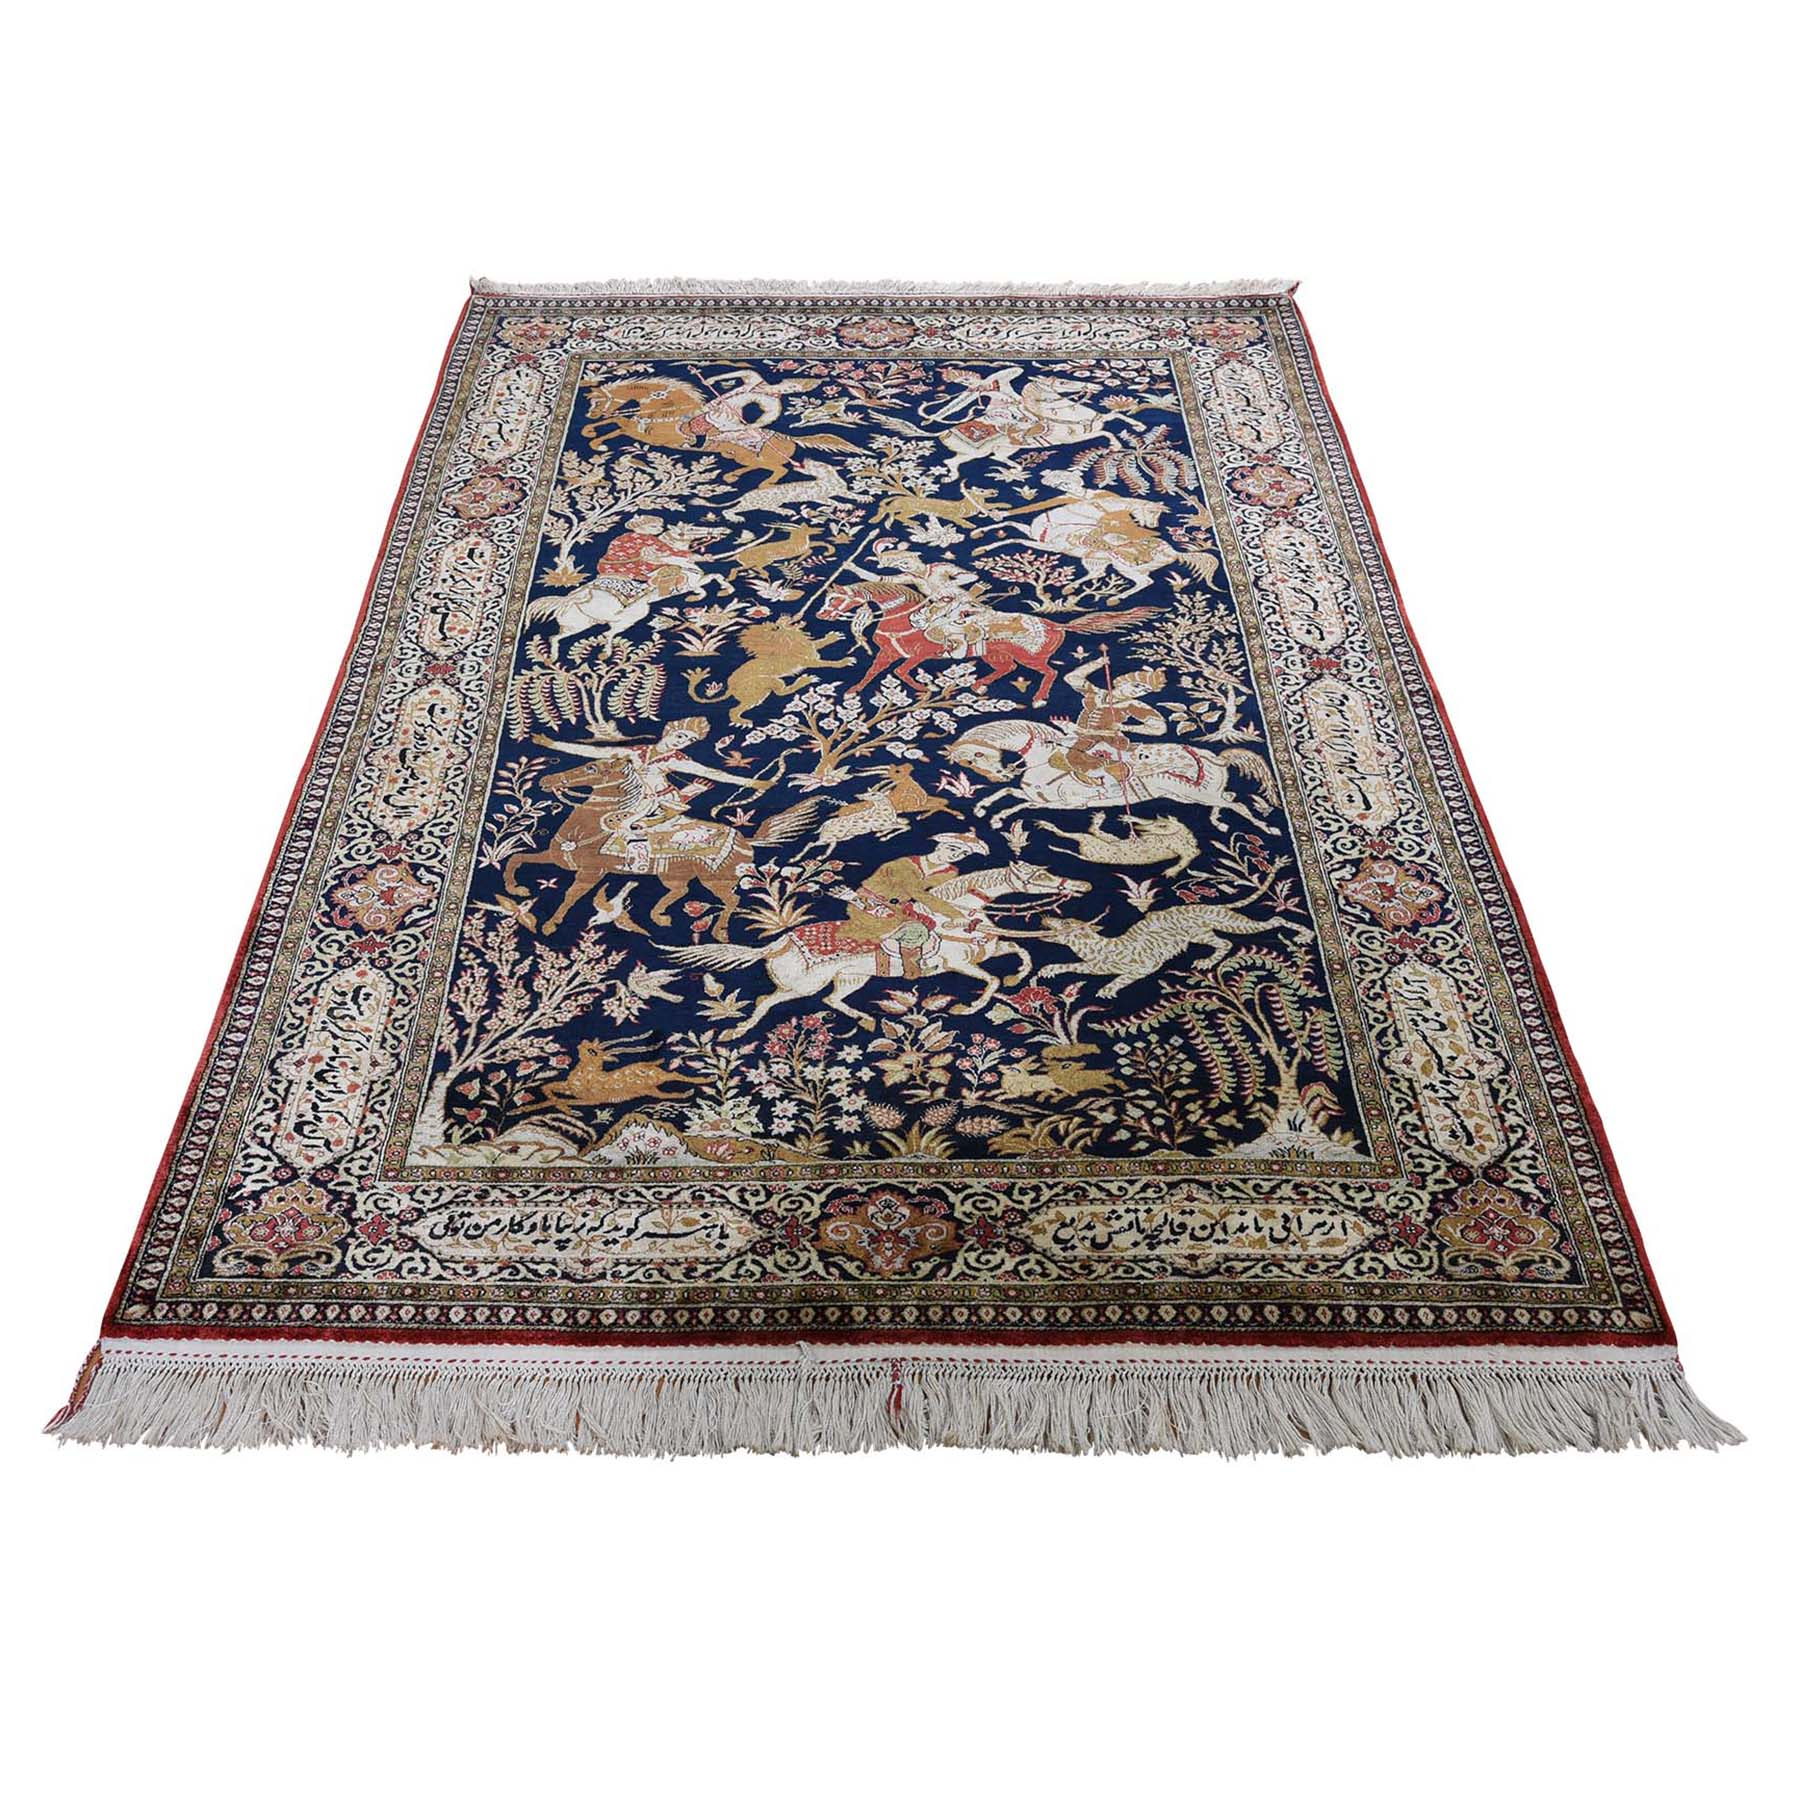 """4'4""""x6'8"""" Navy Blue Vintage Persian Silk Qum Hunting Design With Poetry Hand-Knotted Oriental Rug"""